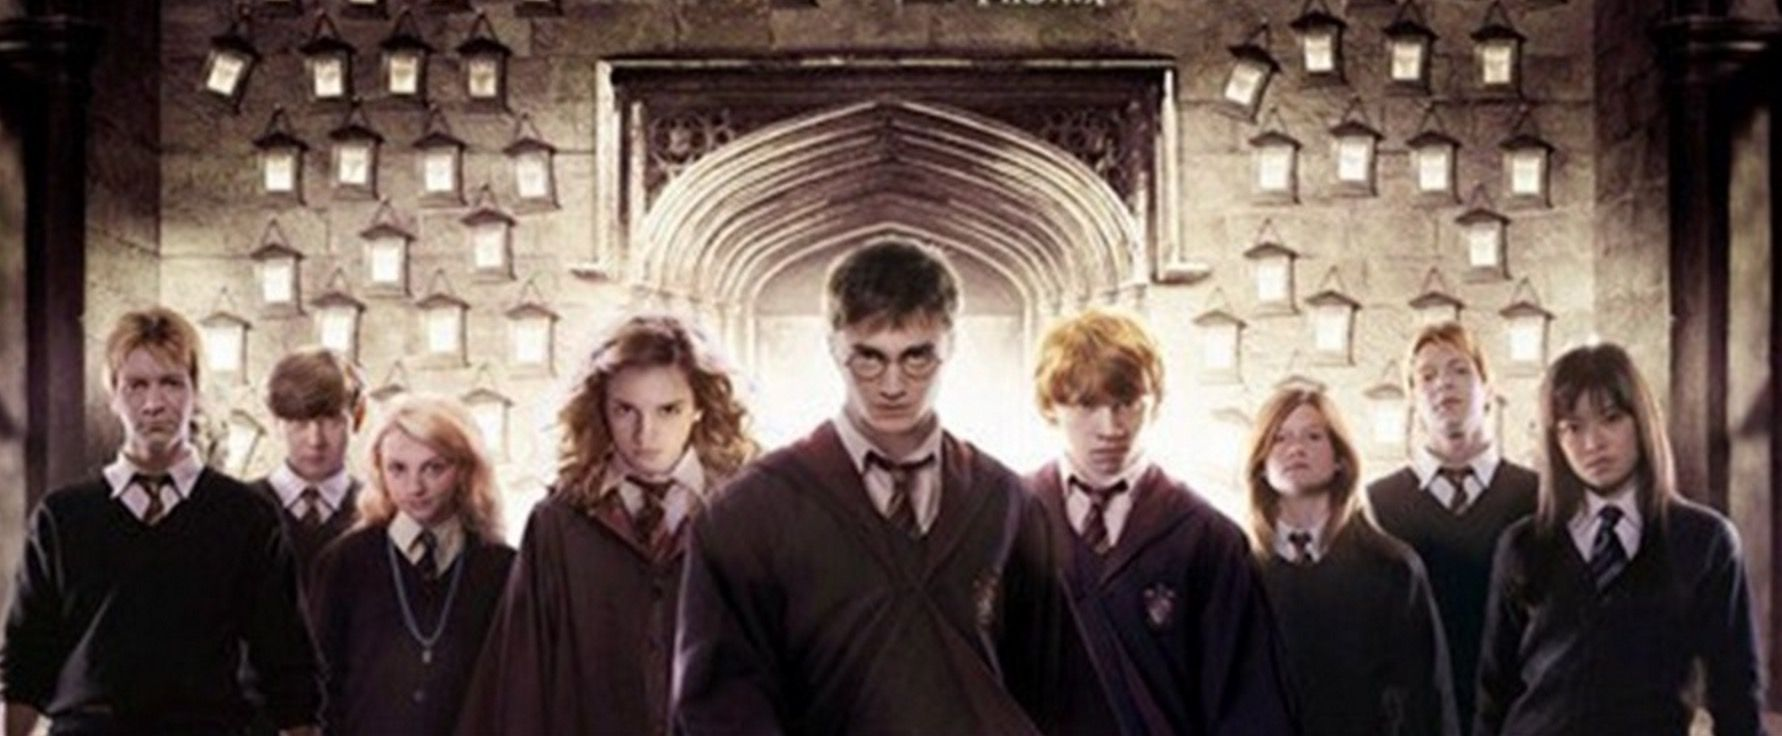 Image result for harry potter film festival